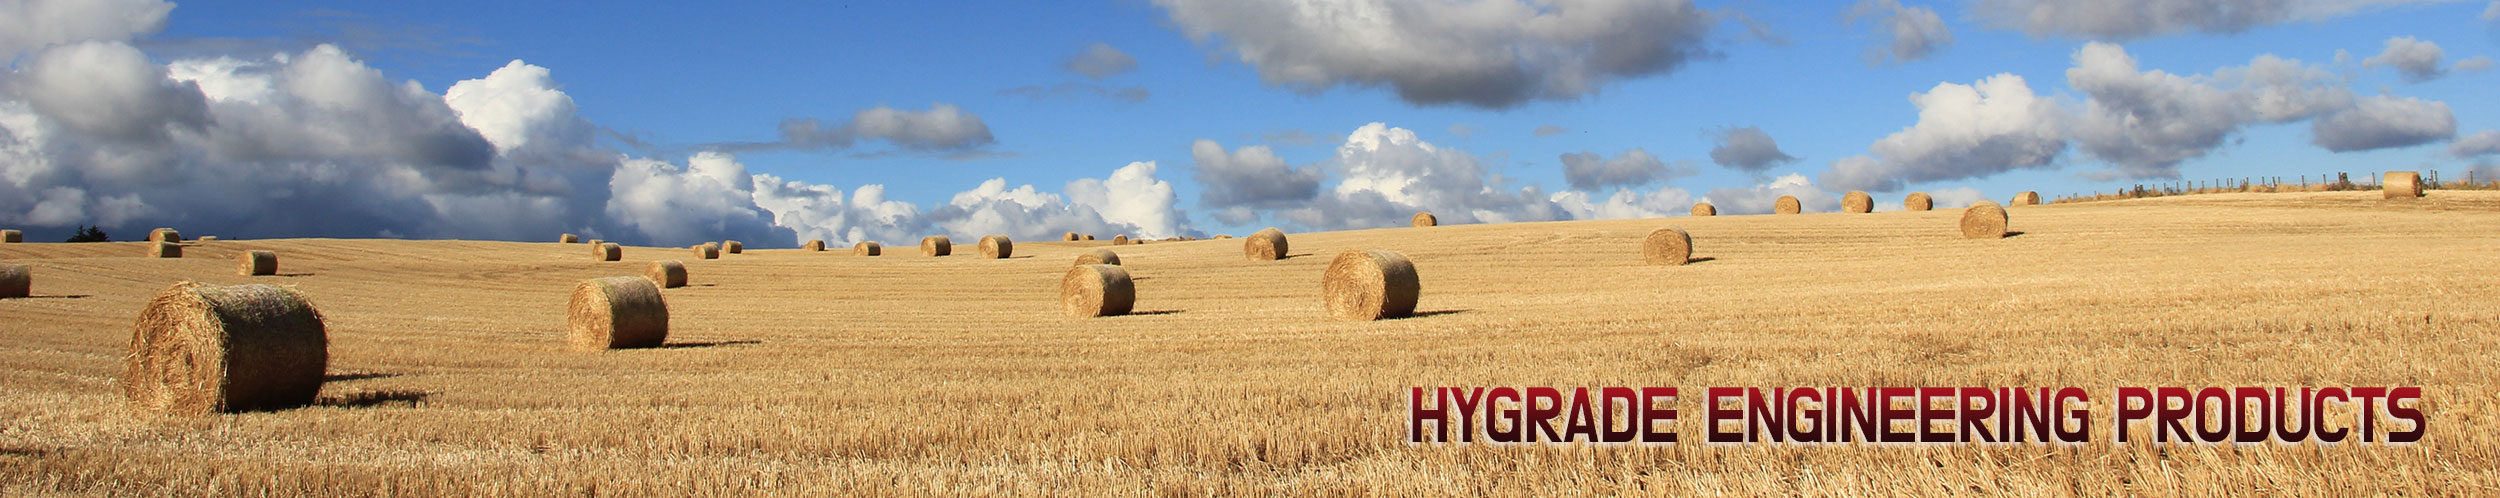 Hygrade Engineering Products